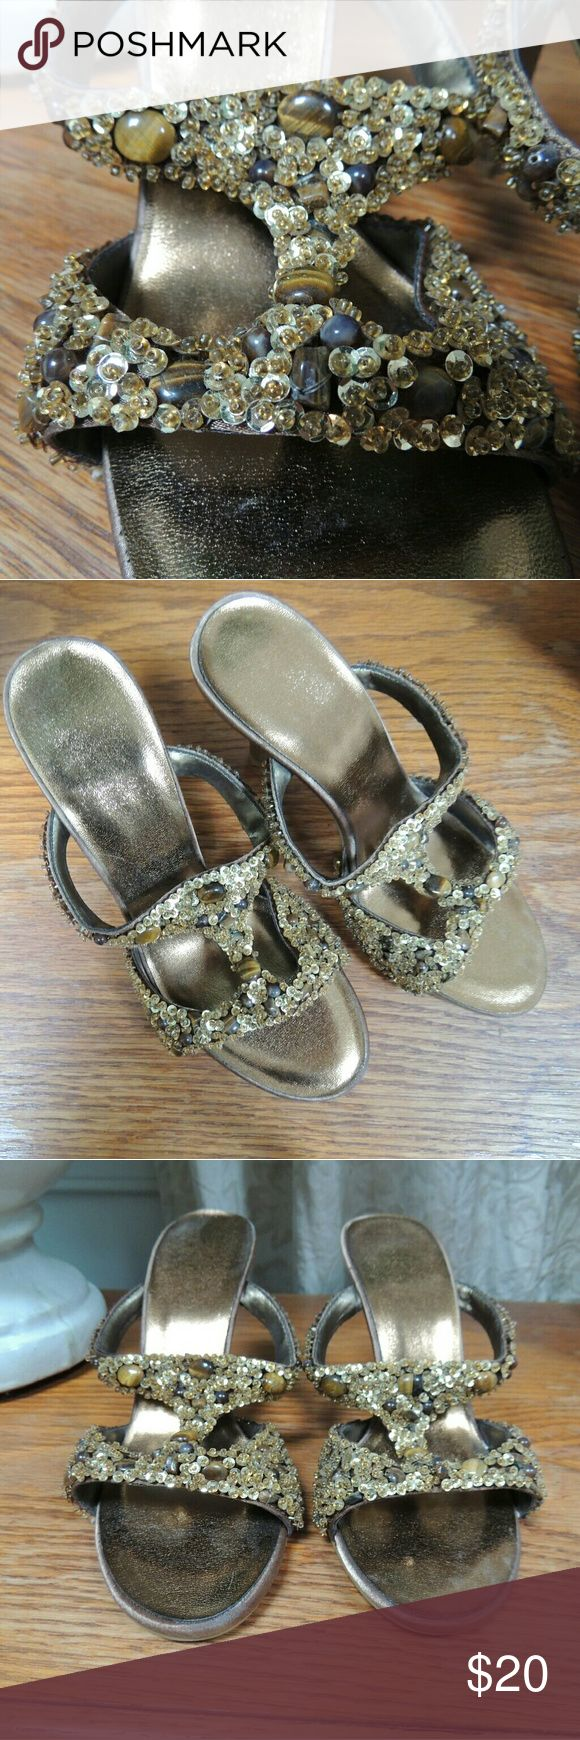 Beaded and sequin high heel evening shoes Tiger eye stone and gold tone beaded high heels.  Size 6.  Never worn.  No markings of brand that I can see. unknown Shoes Heels